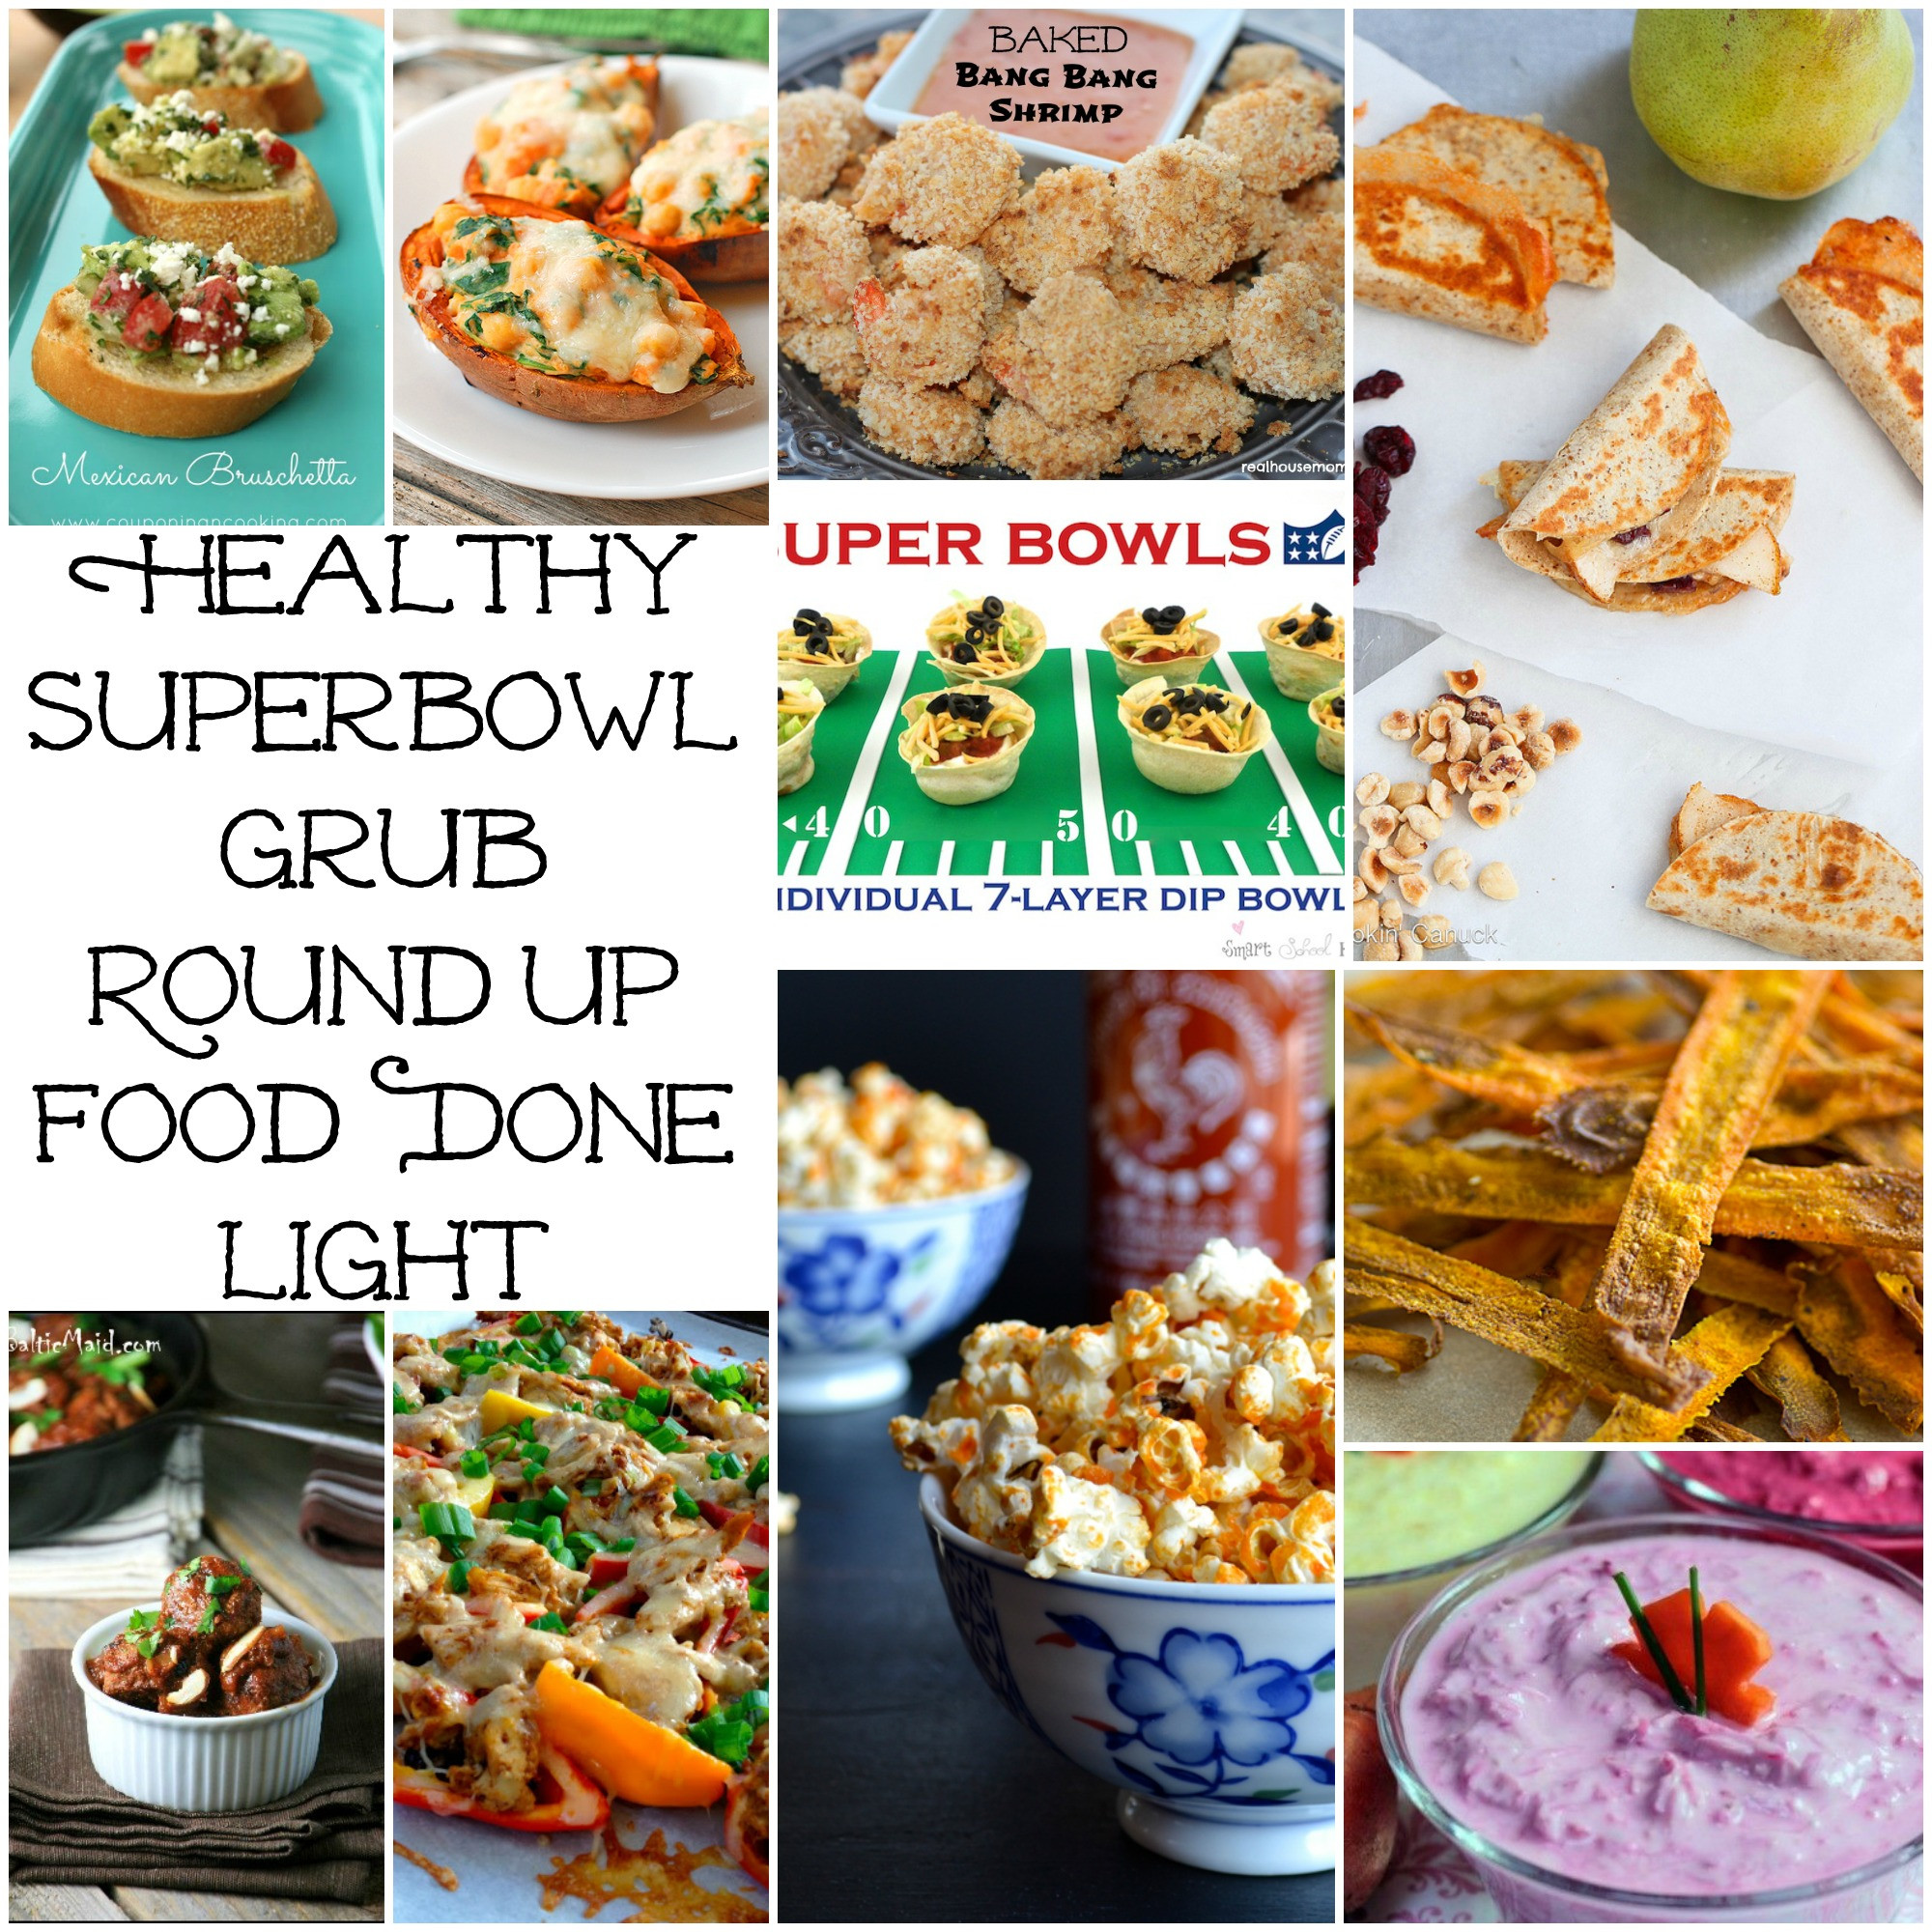 Healthy Snacks For Superbowl Party  Healthy Superbowl Party Recipe Round Up Food Done Light